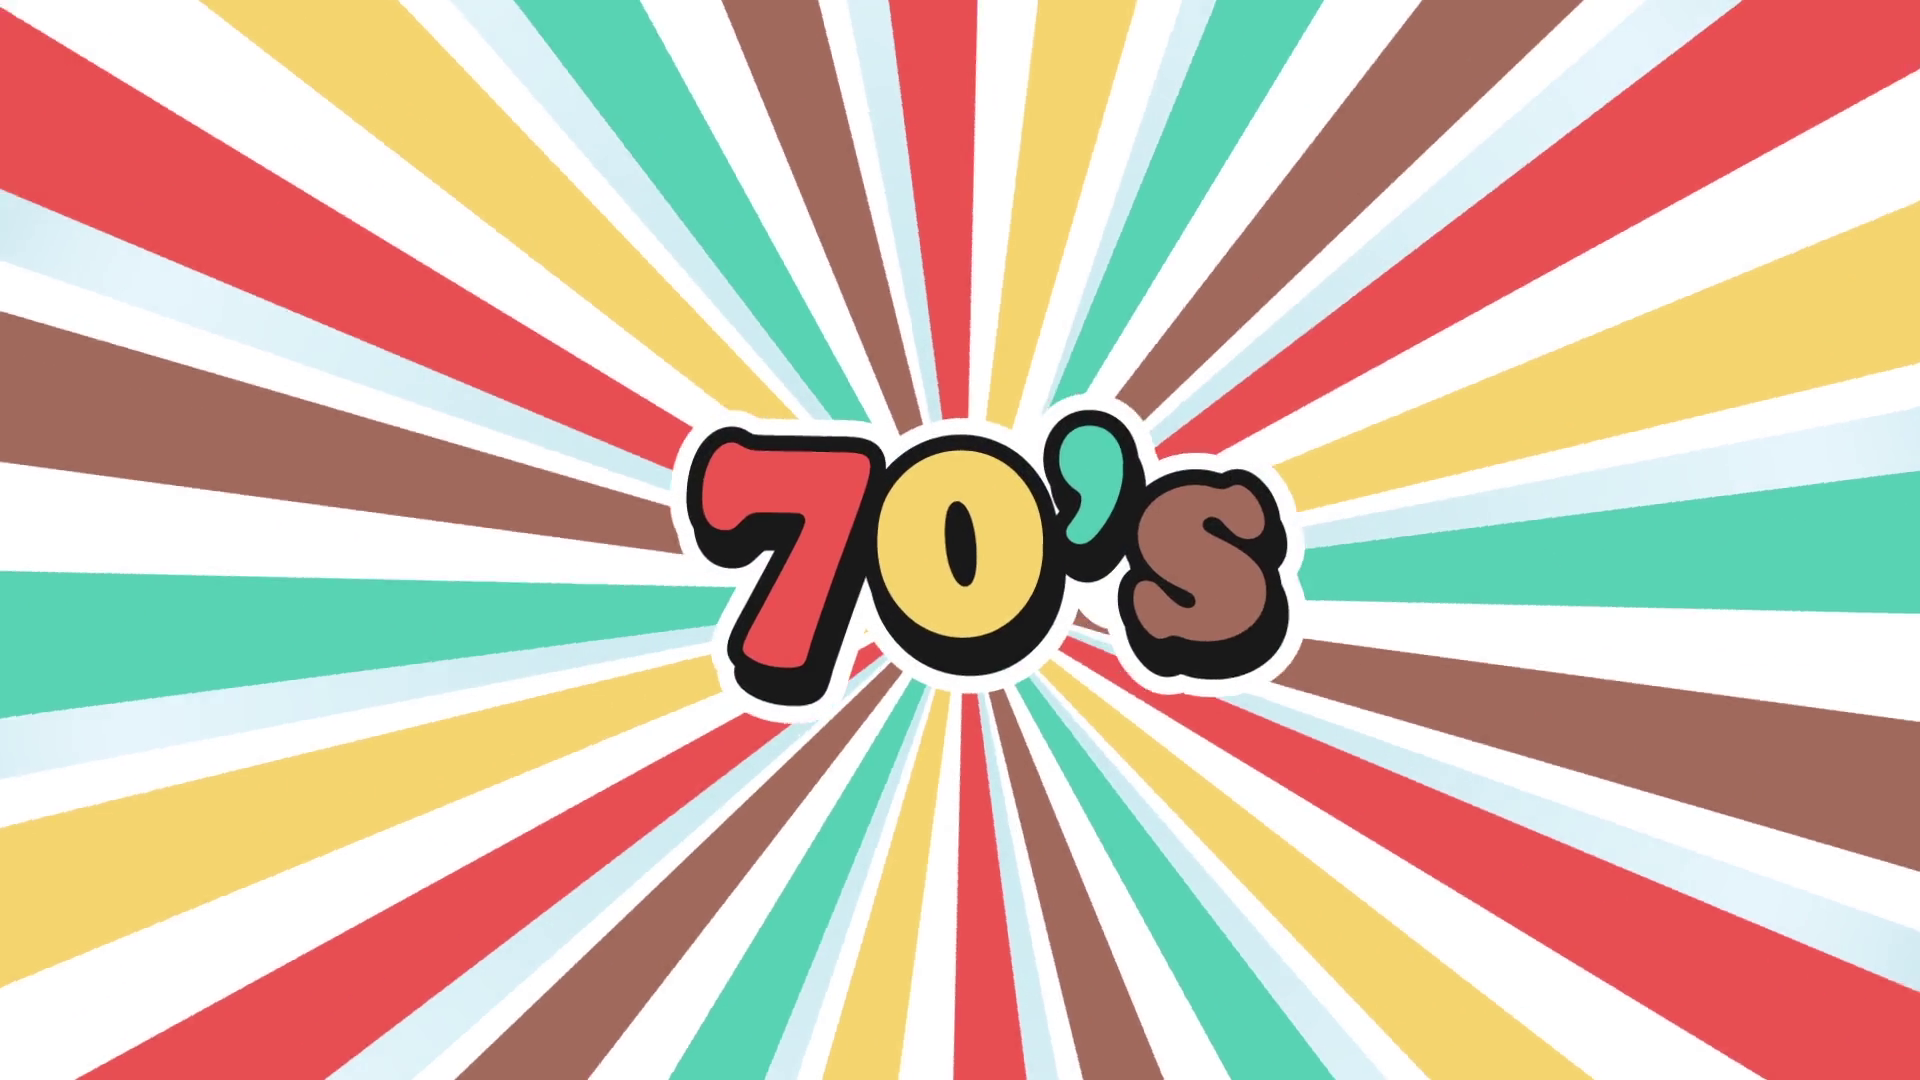 Pin By Alex On 70s Background Vintage Animation Background Retro Background